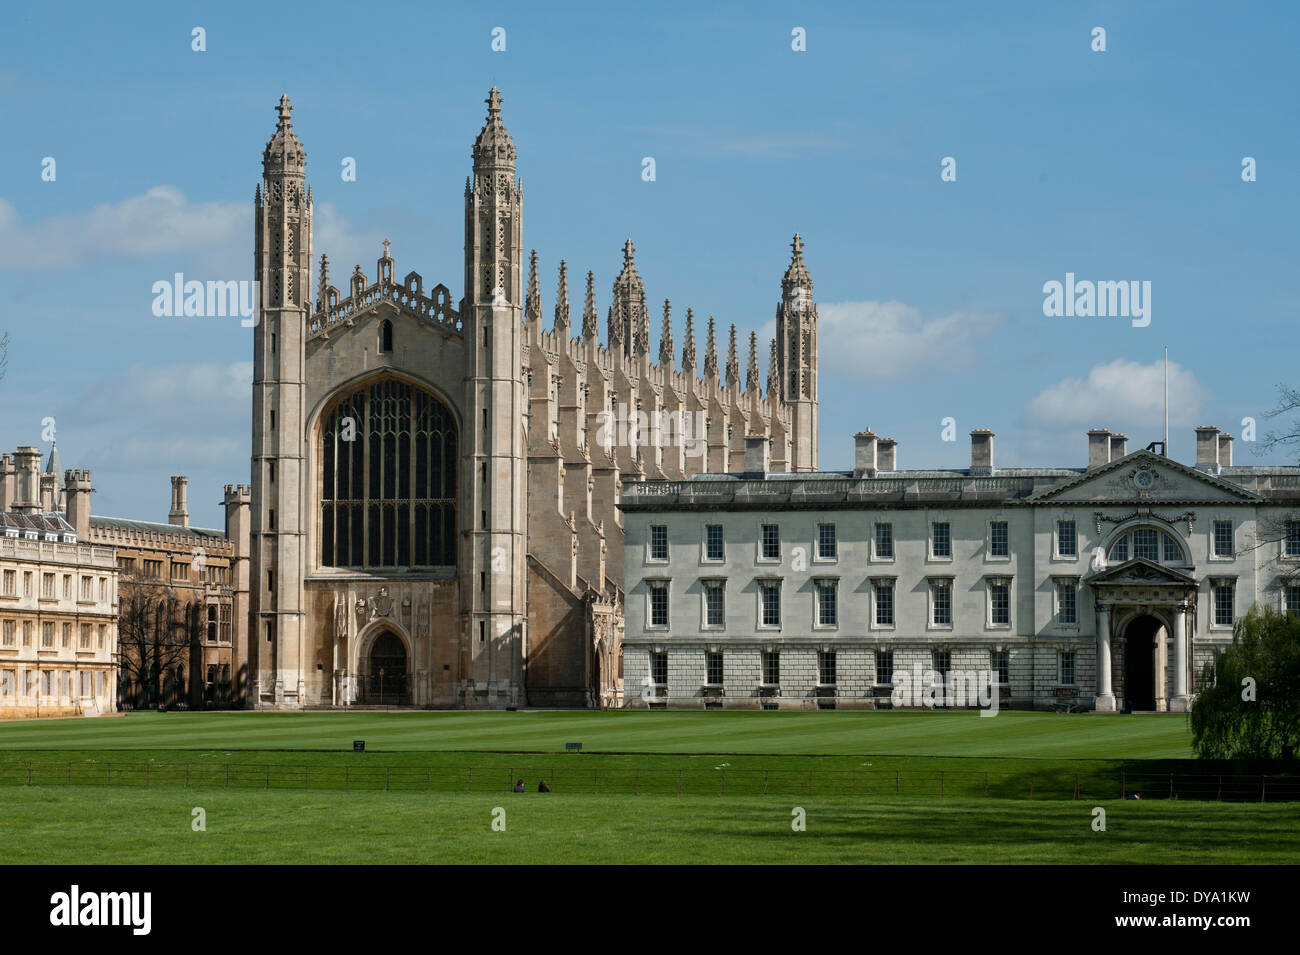 Cambridge, King's College Chapel, King's College, Cambridge University, England. 9 April 2014. Photograph - Stock Image